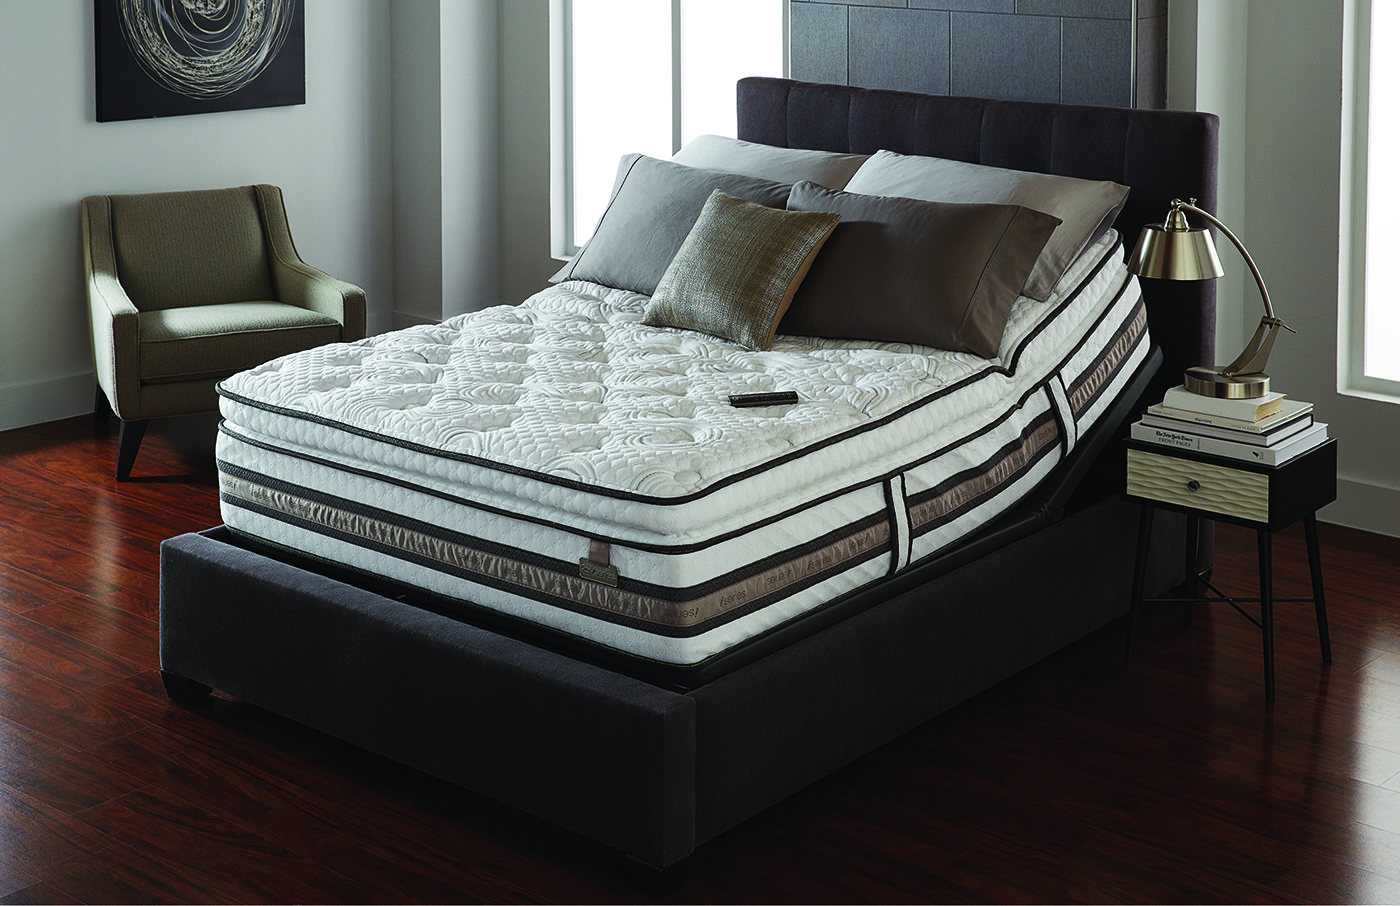 Don T Miss Our Canada Day Sale Until July 11 All Serta Iseries On Sale Plus Get A King For The Price Of A Queen Dufresne Bedrooms Furniture Mattress Best King